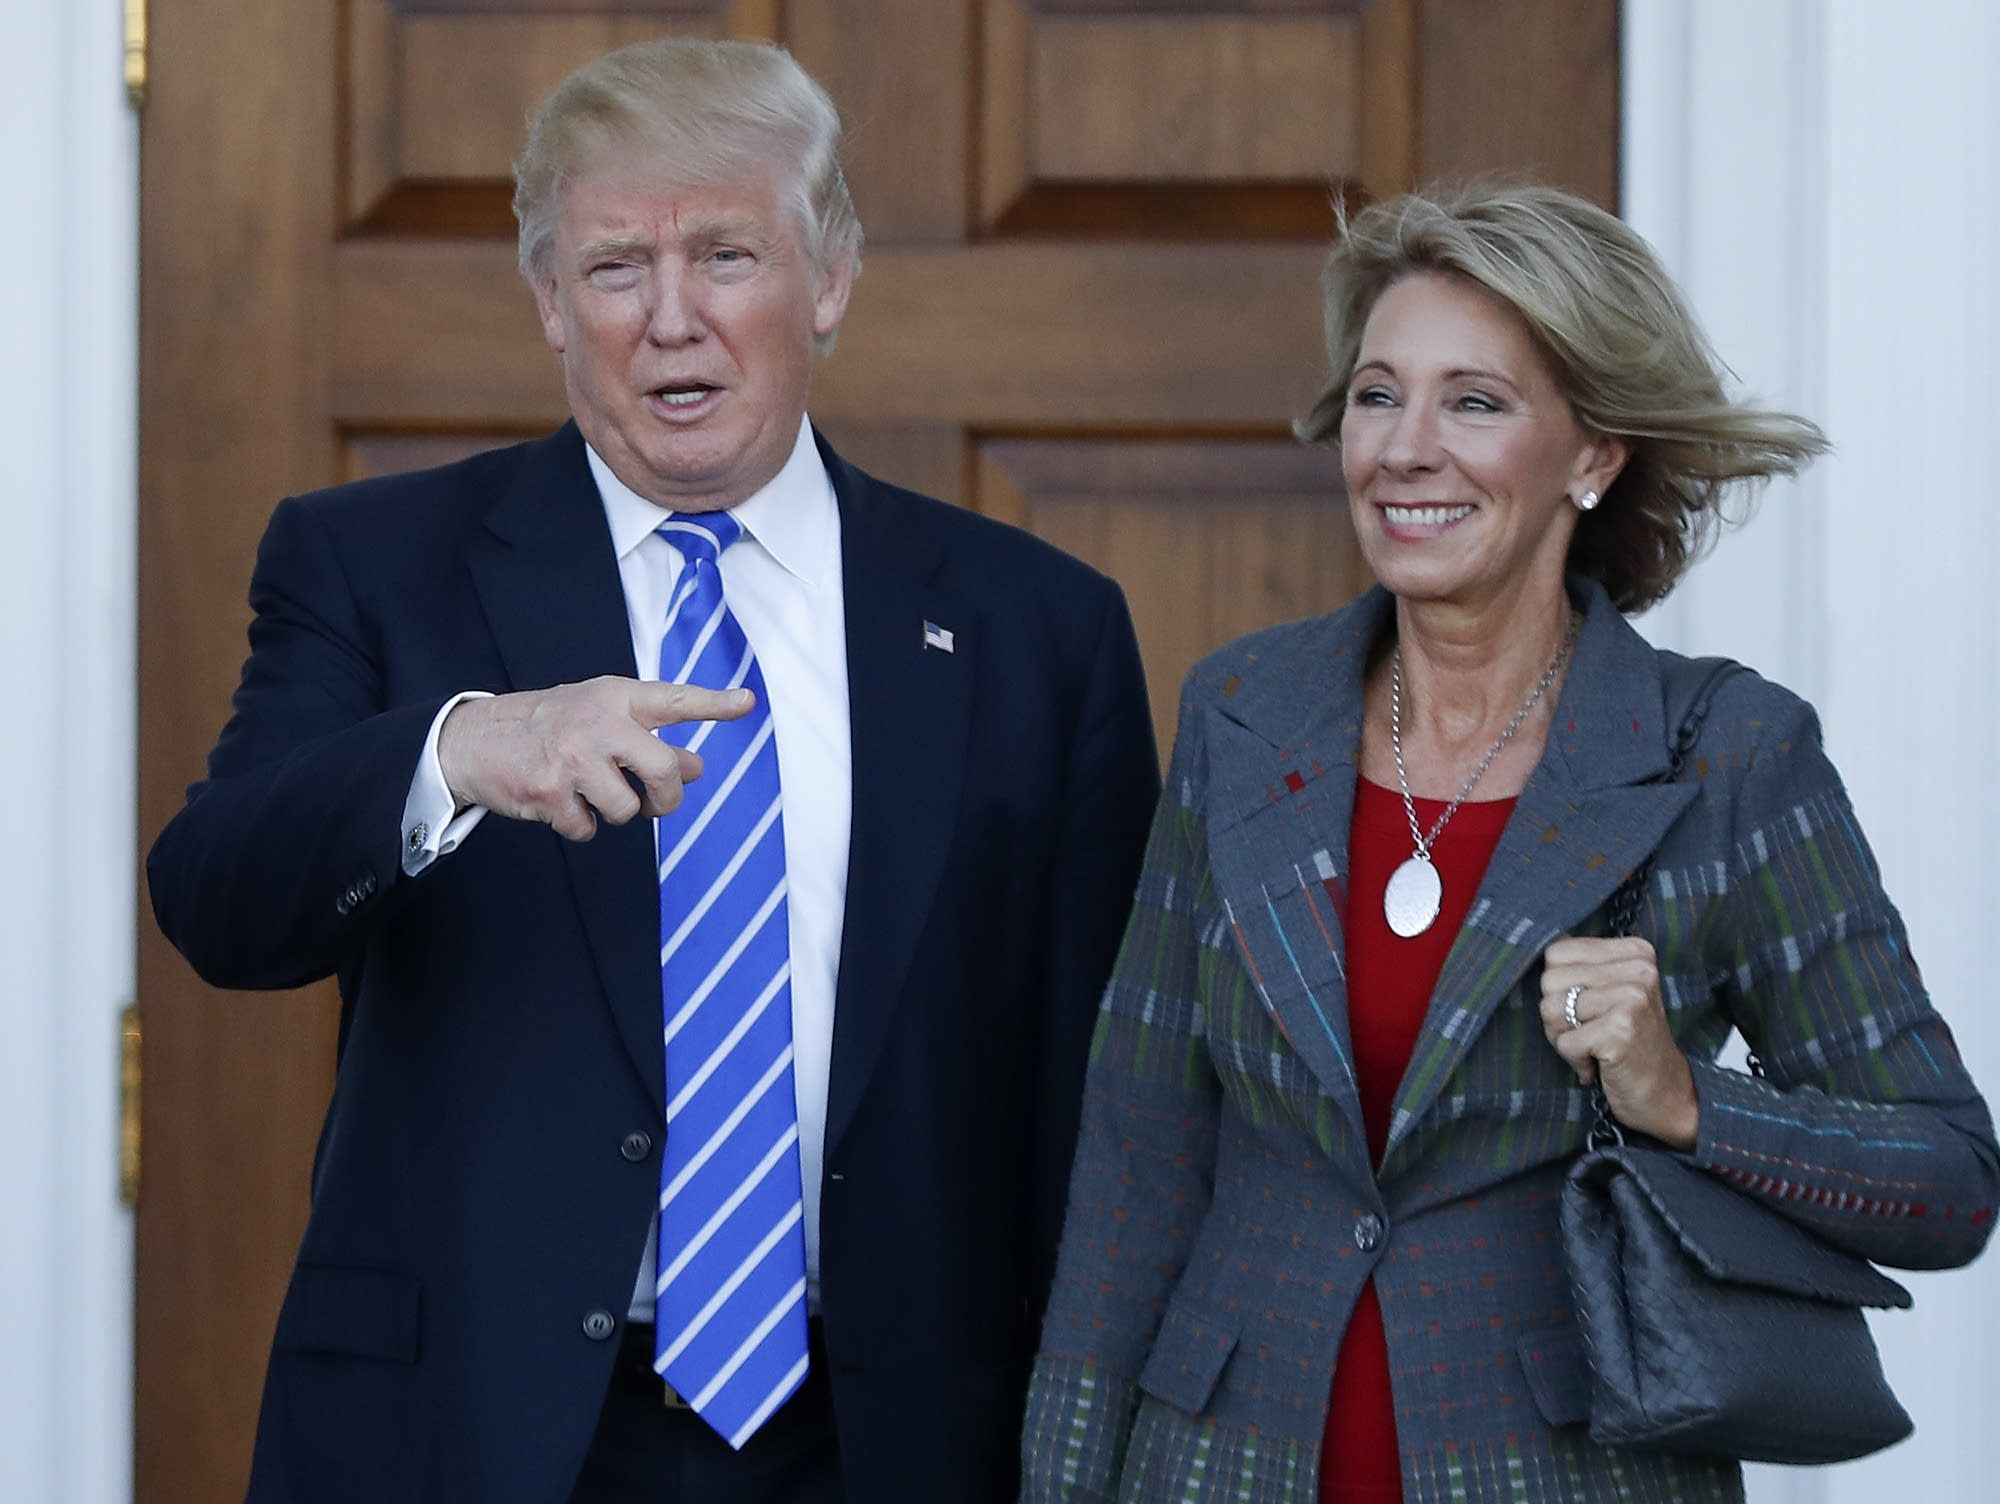 Donald Trump and Betsy DeVos